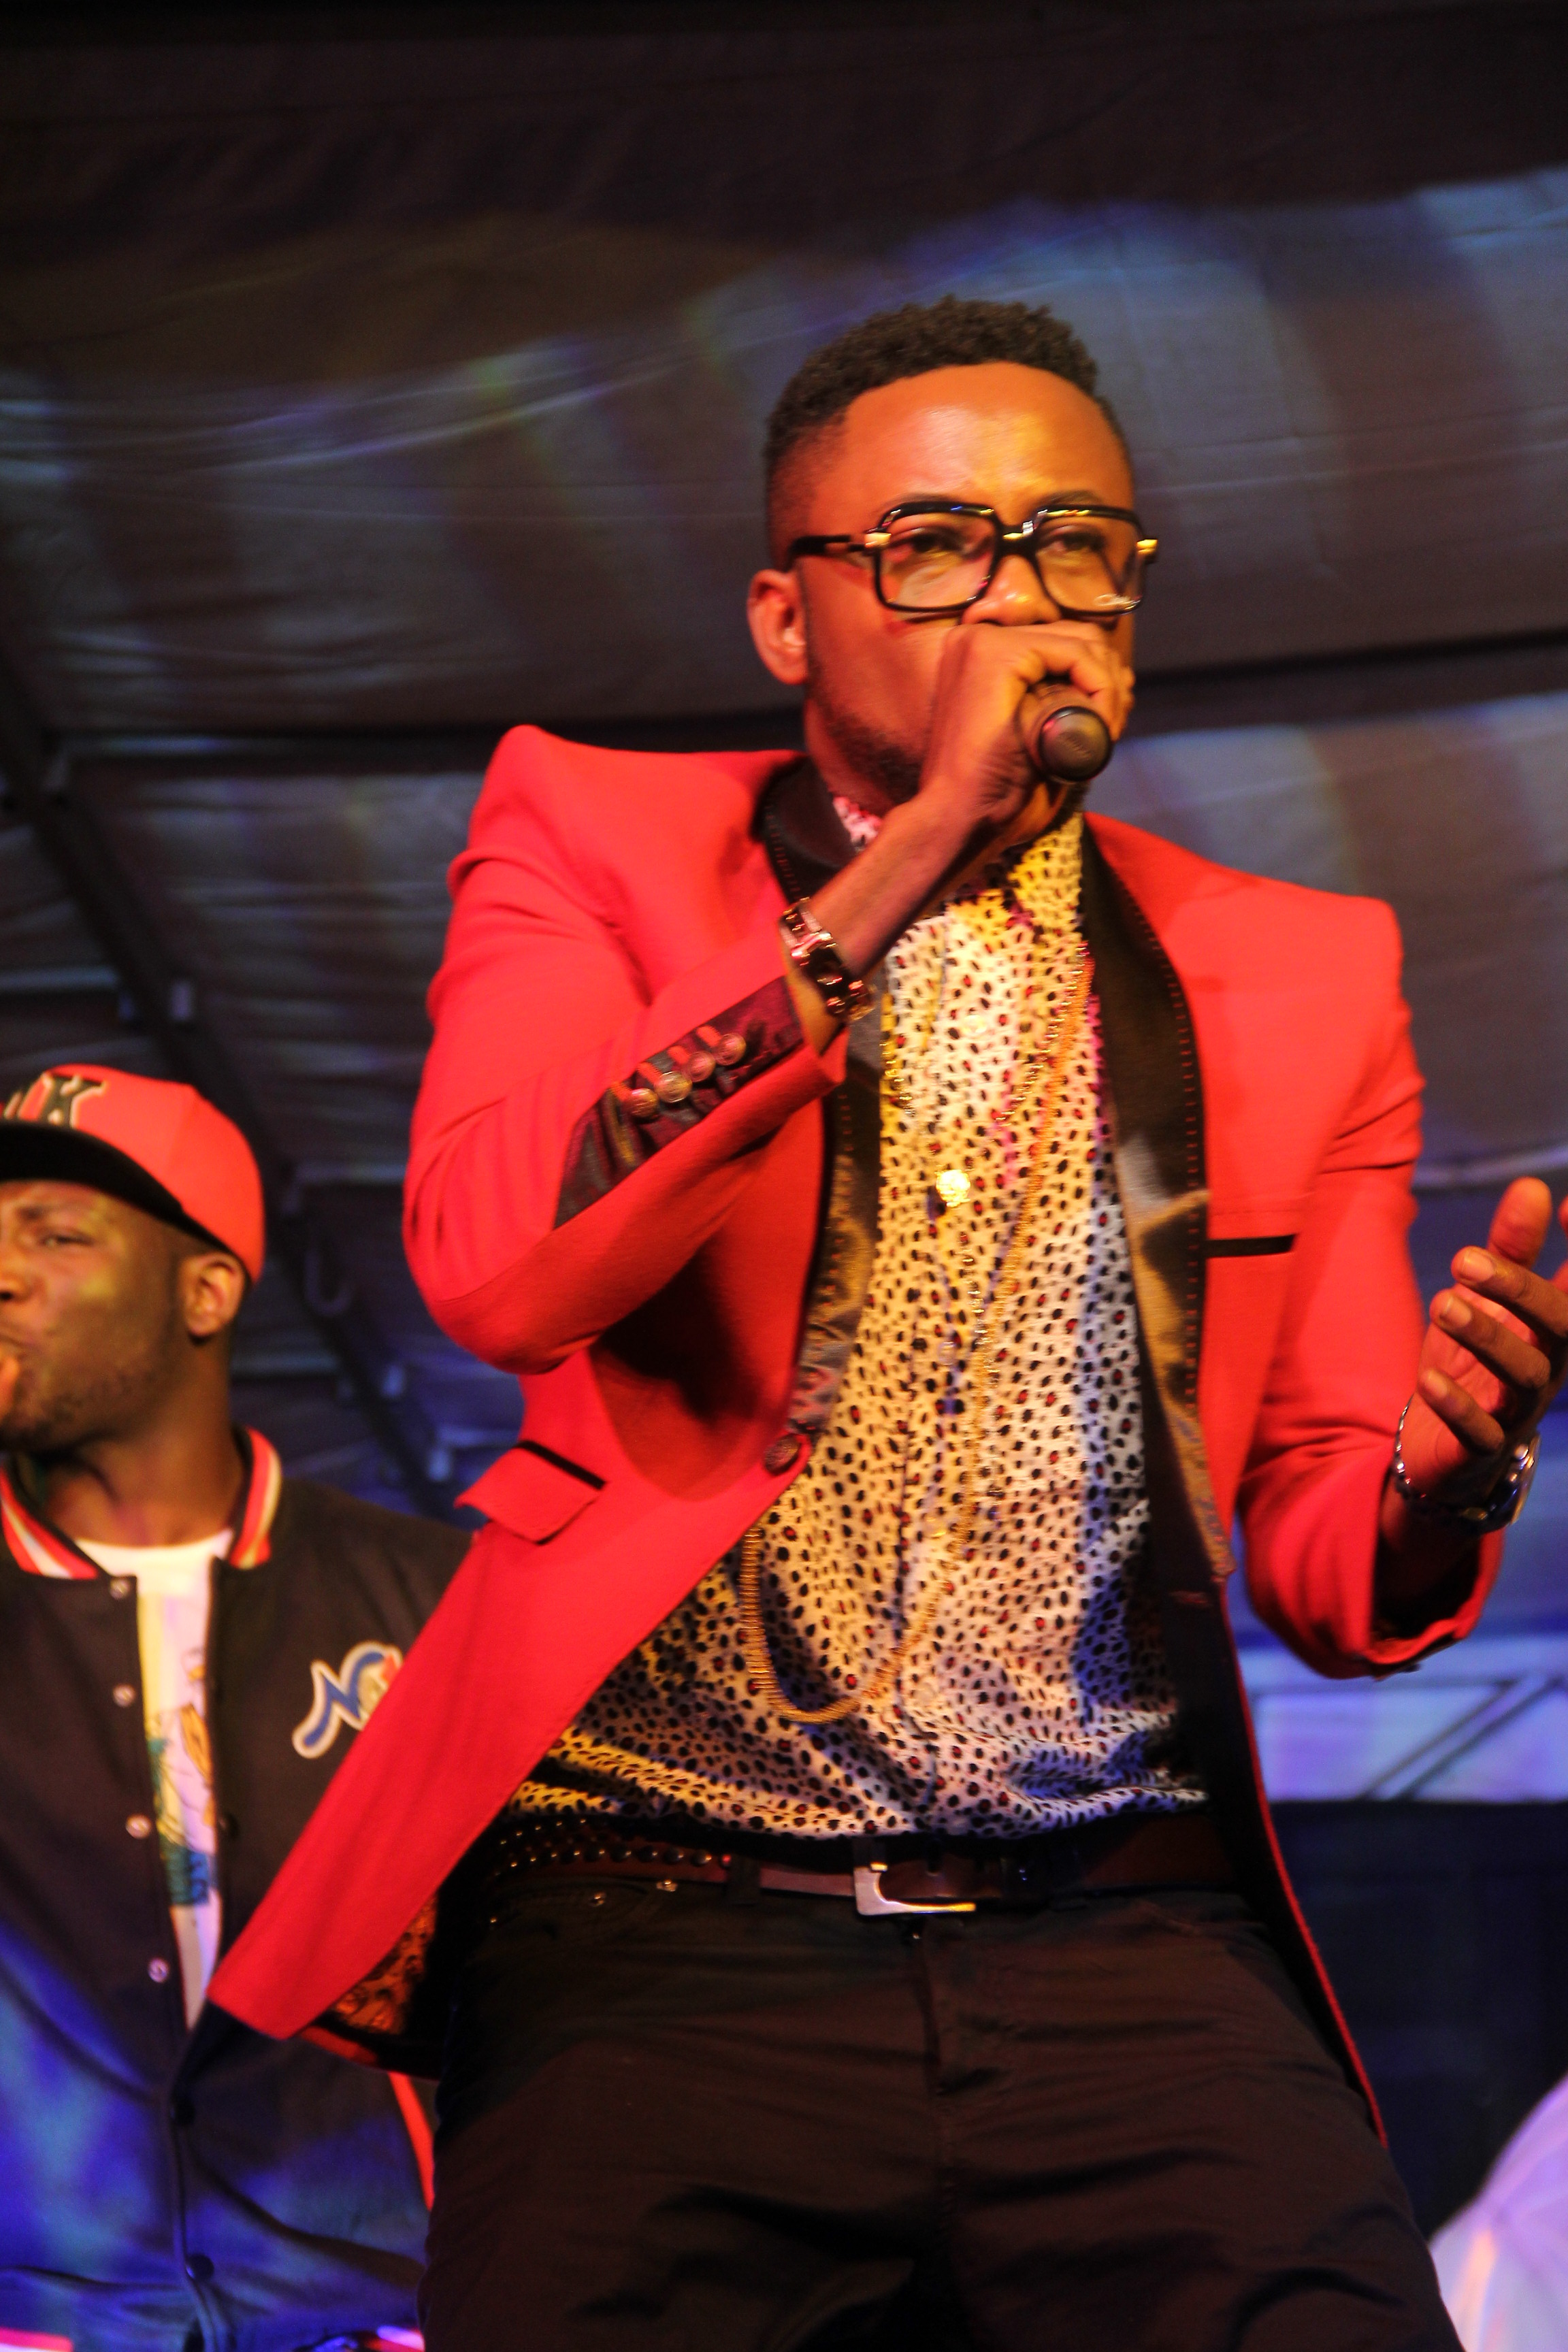 Wizboy performing on stage